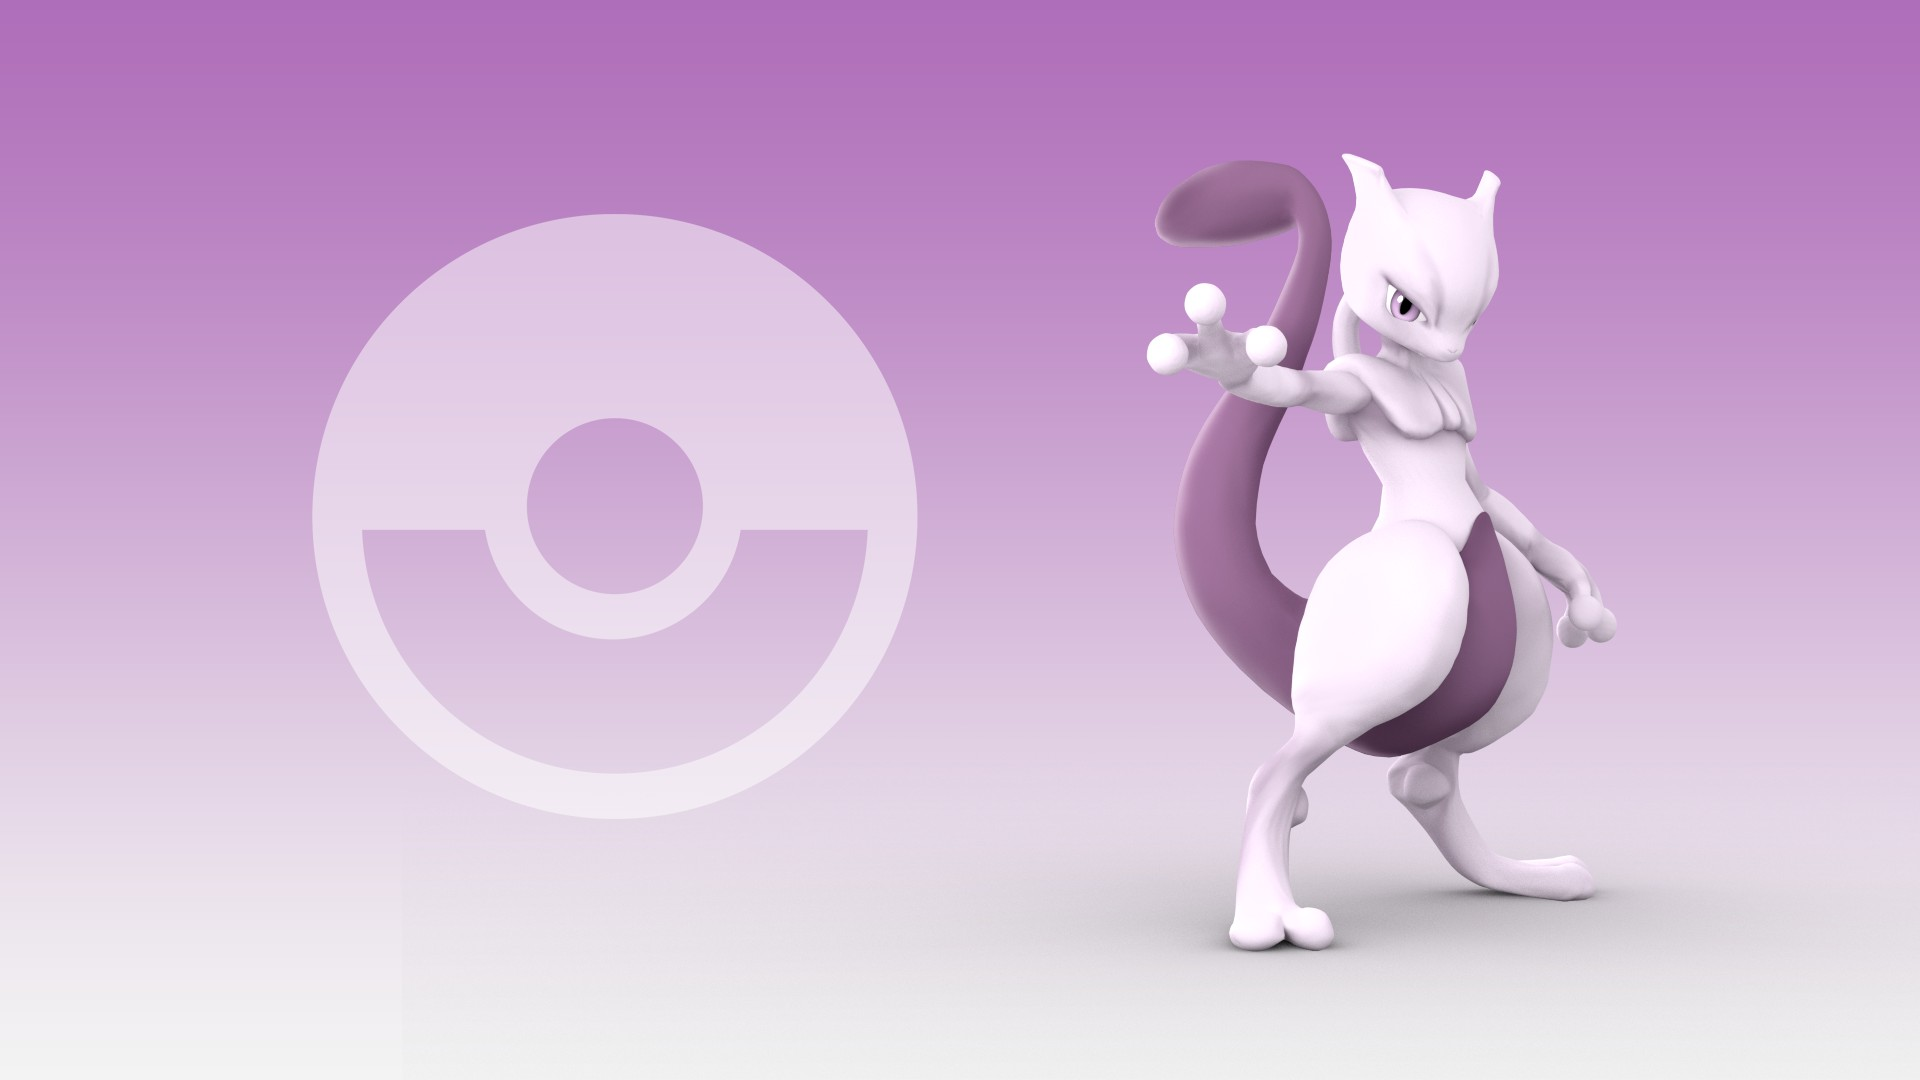 The Legend Of Zelda Hd Wallpaper Mewtwo Wallpaper 183 ① Download Free Stunning Full Hd